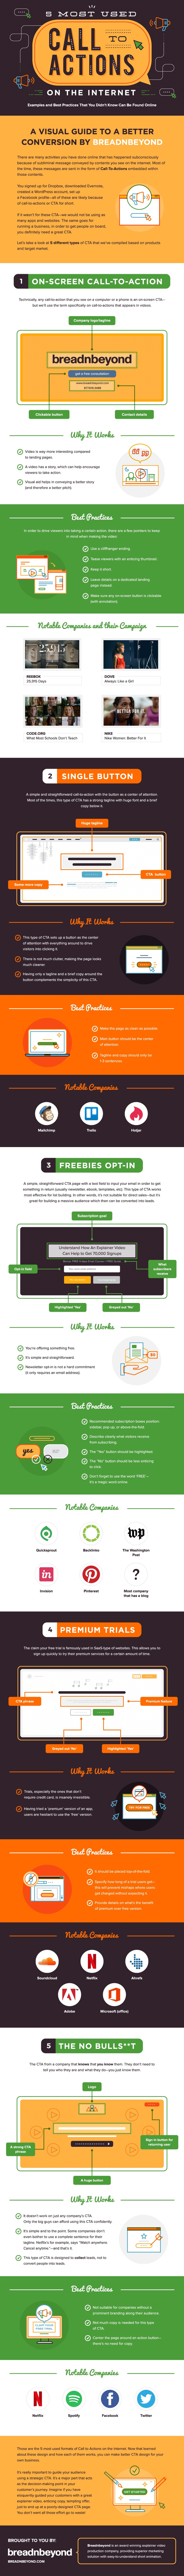 The 5 Most Used Call-to-Action Designs on the Internet [INFOGRAPHIC]